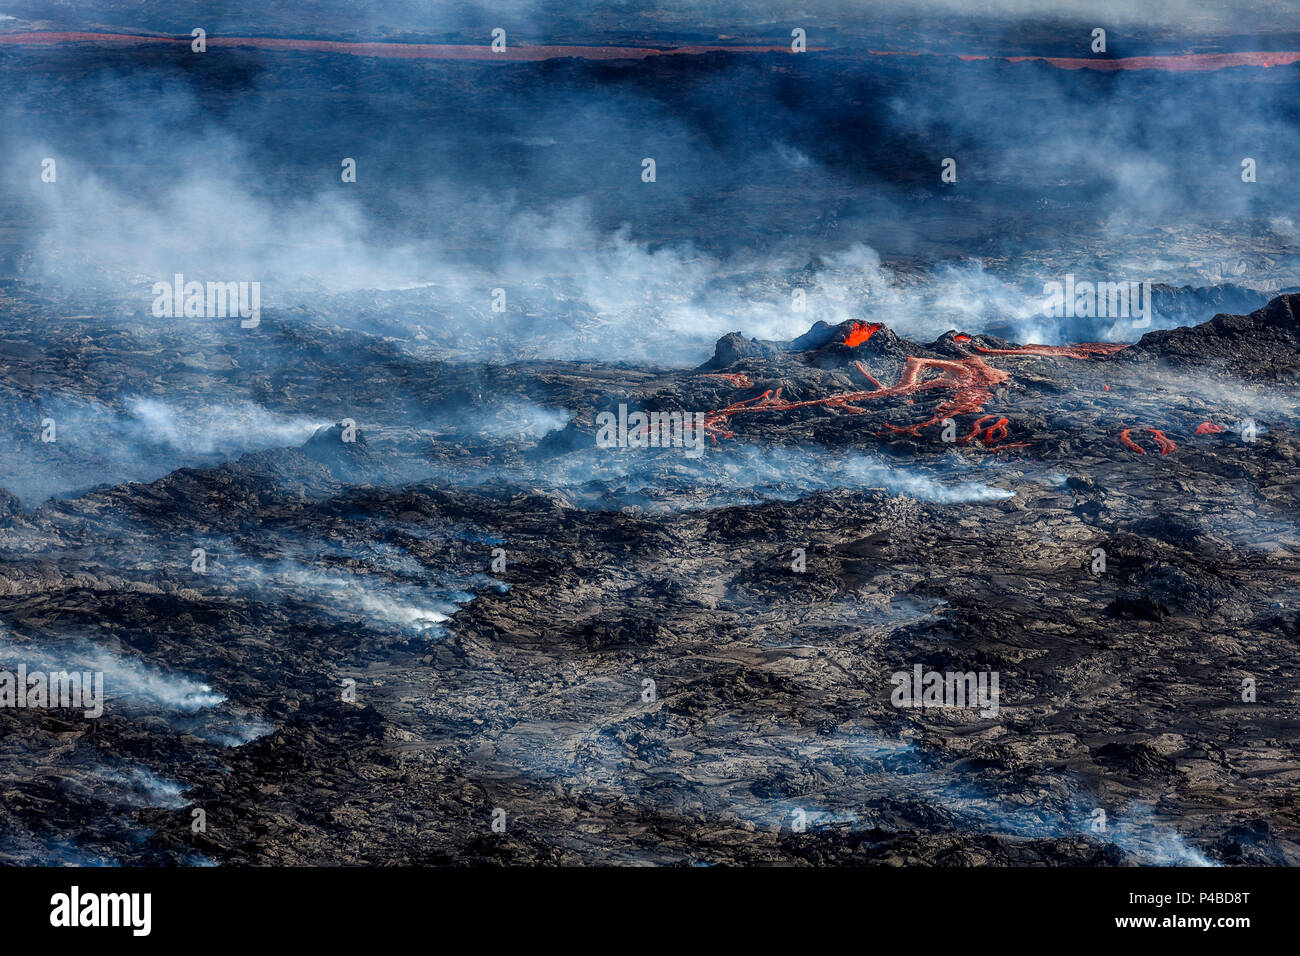 Volcano Eruption at the Holuhraun Fissure near Bardarbunga Volcano, Iceland. August 29, 2014 a fissure eruption started in Holuhraun at the northern end of a magma intrusion, which had moved progressively north, from the Bardarbunga volcano. Bardarbunga is a stratovolcano located under Vatnajokull, Iceland's most extensive glacier. Picture Date-Sept. 3, 2014 - Stock Image